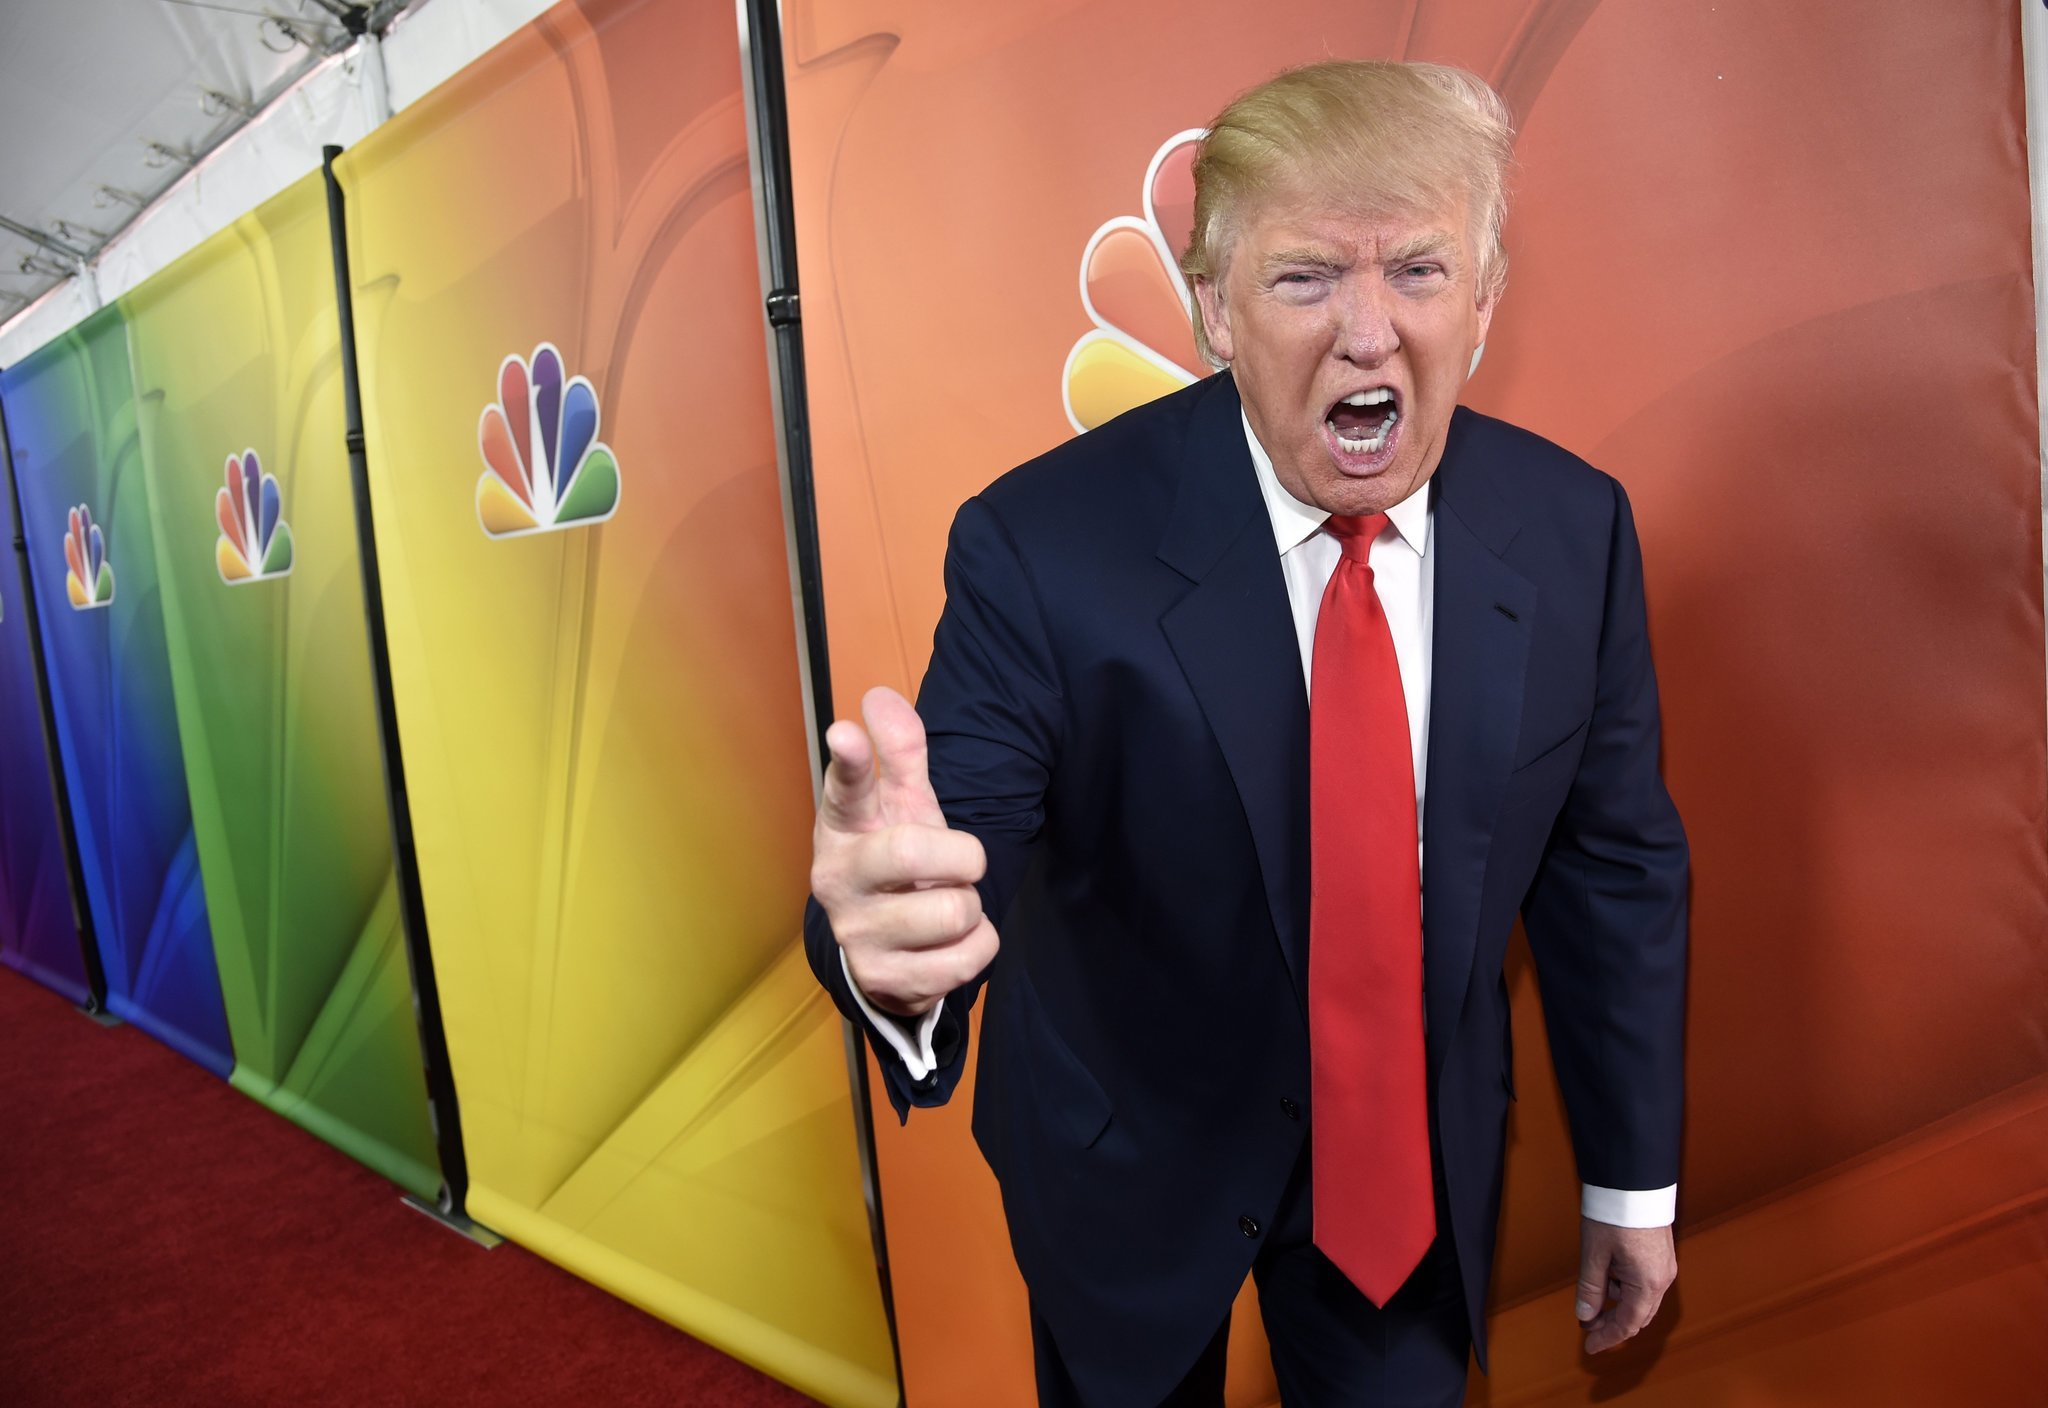 Donald Trump To Remain Executive Producer On Celebrity